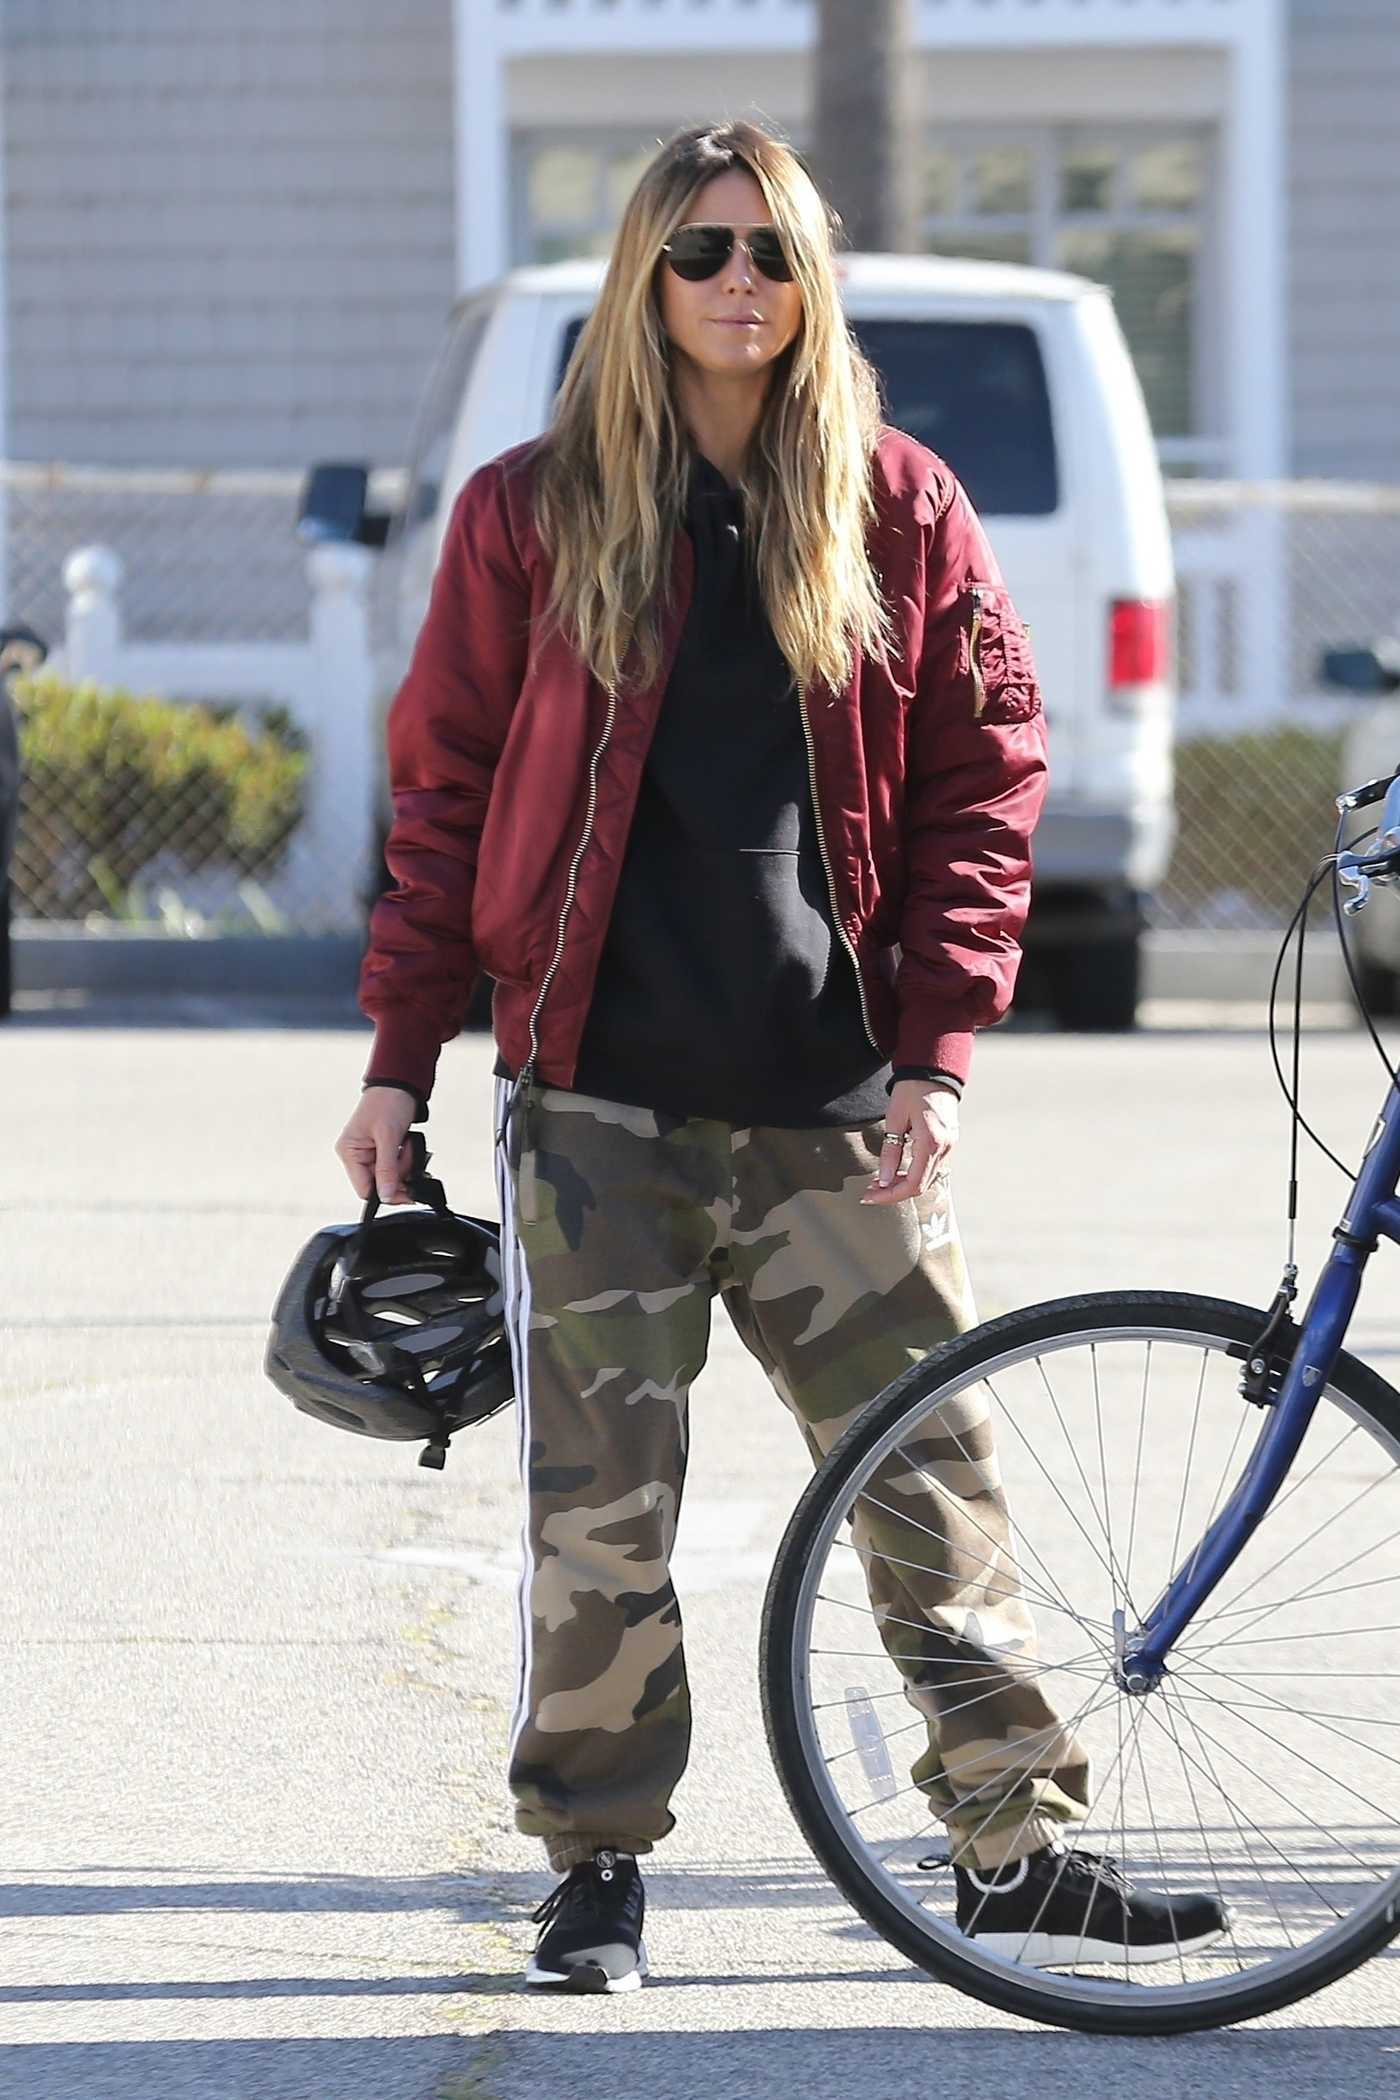 Heidi Klum Was Seen Out for a Bike Ride in Santa Monica 12/29/2018